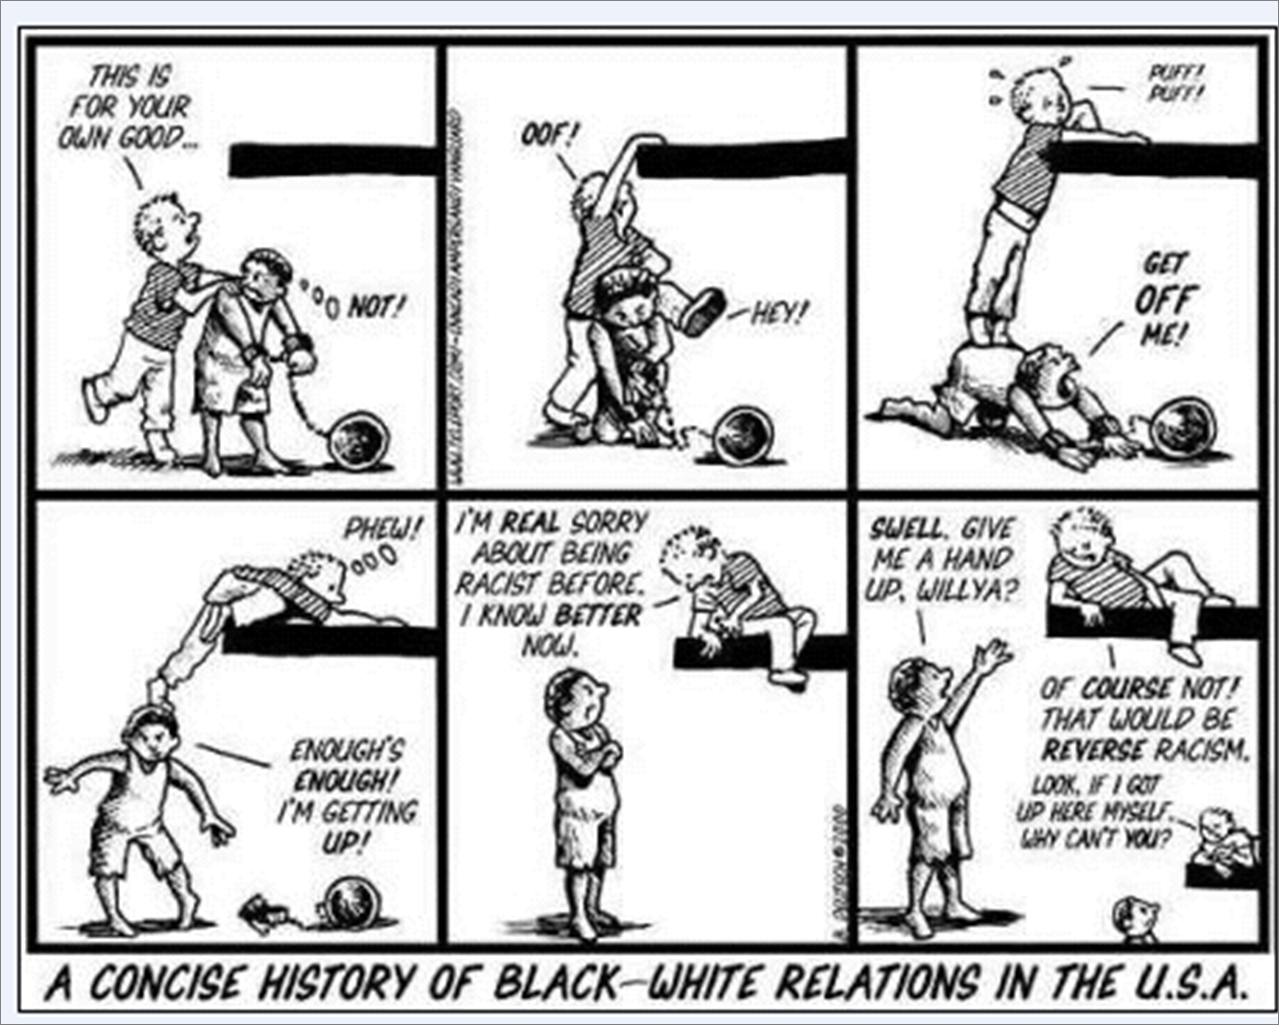 A Concise History of Race Relations in the U.S.